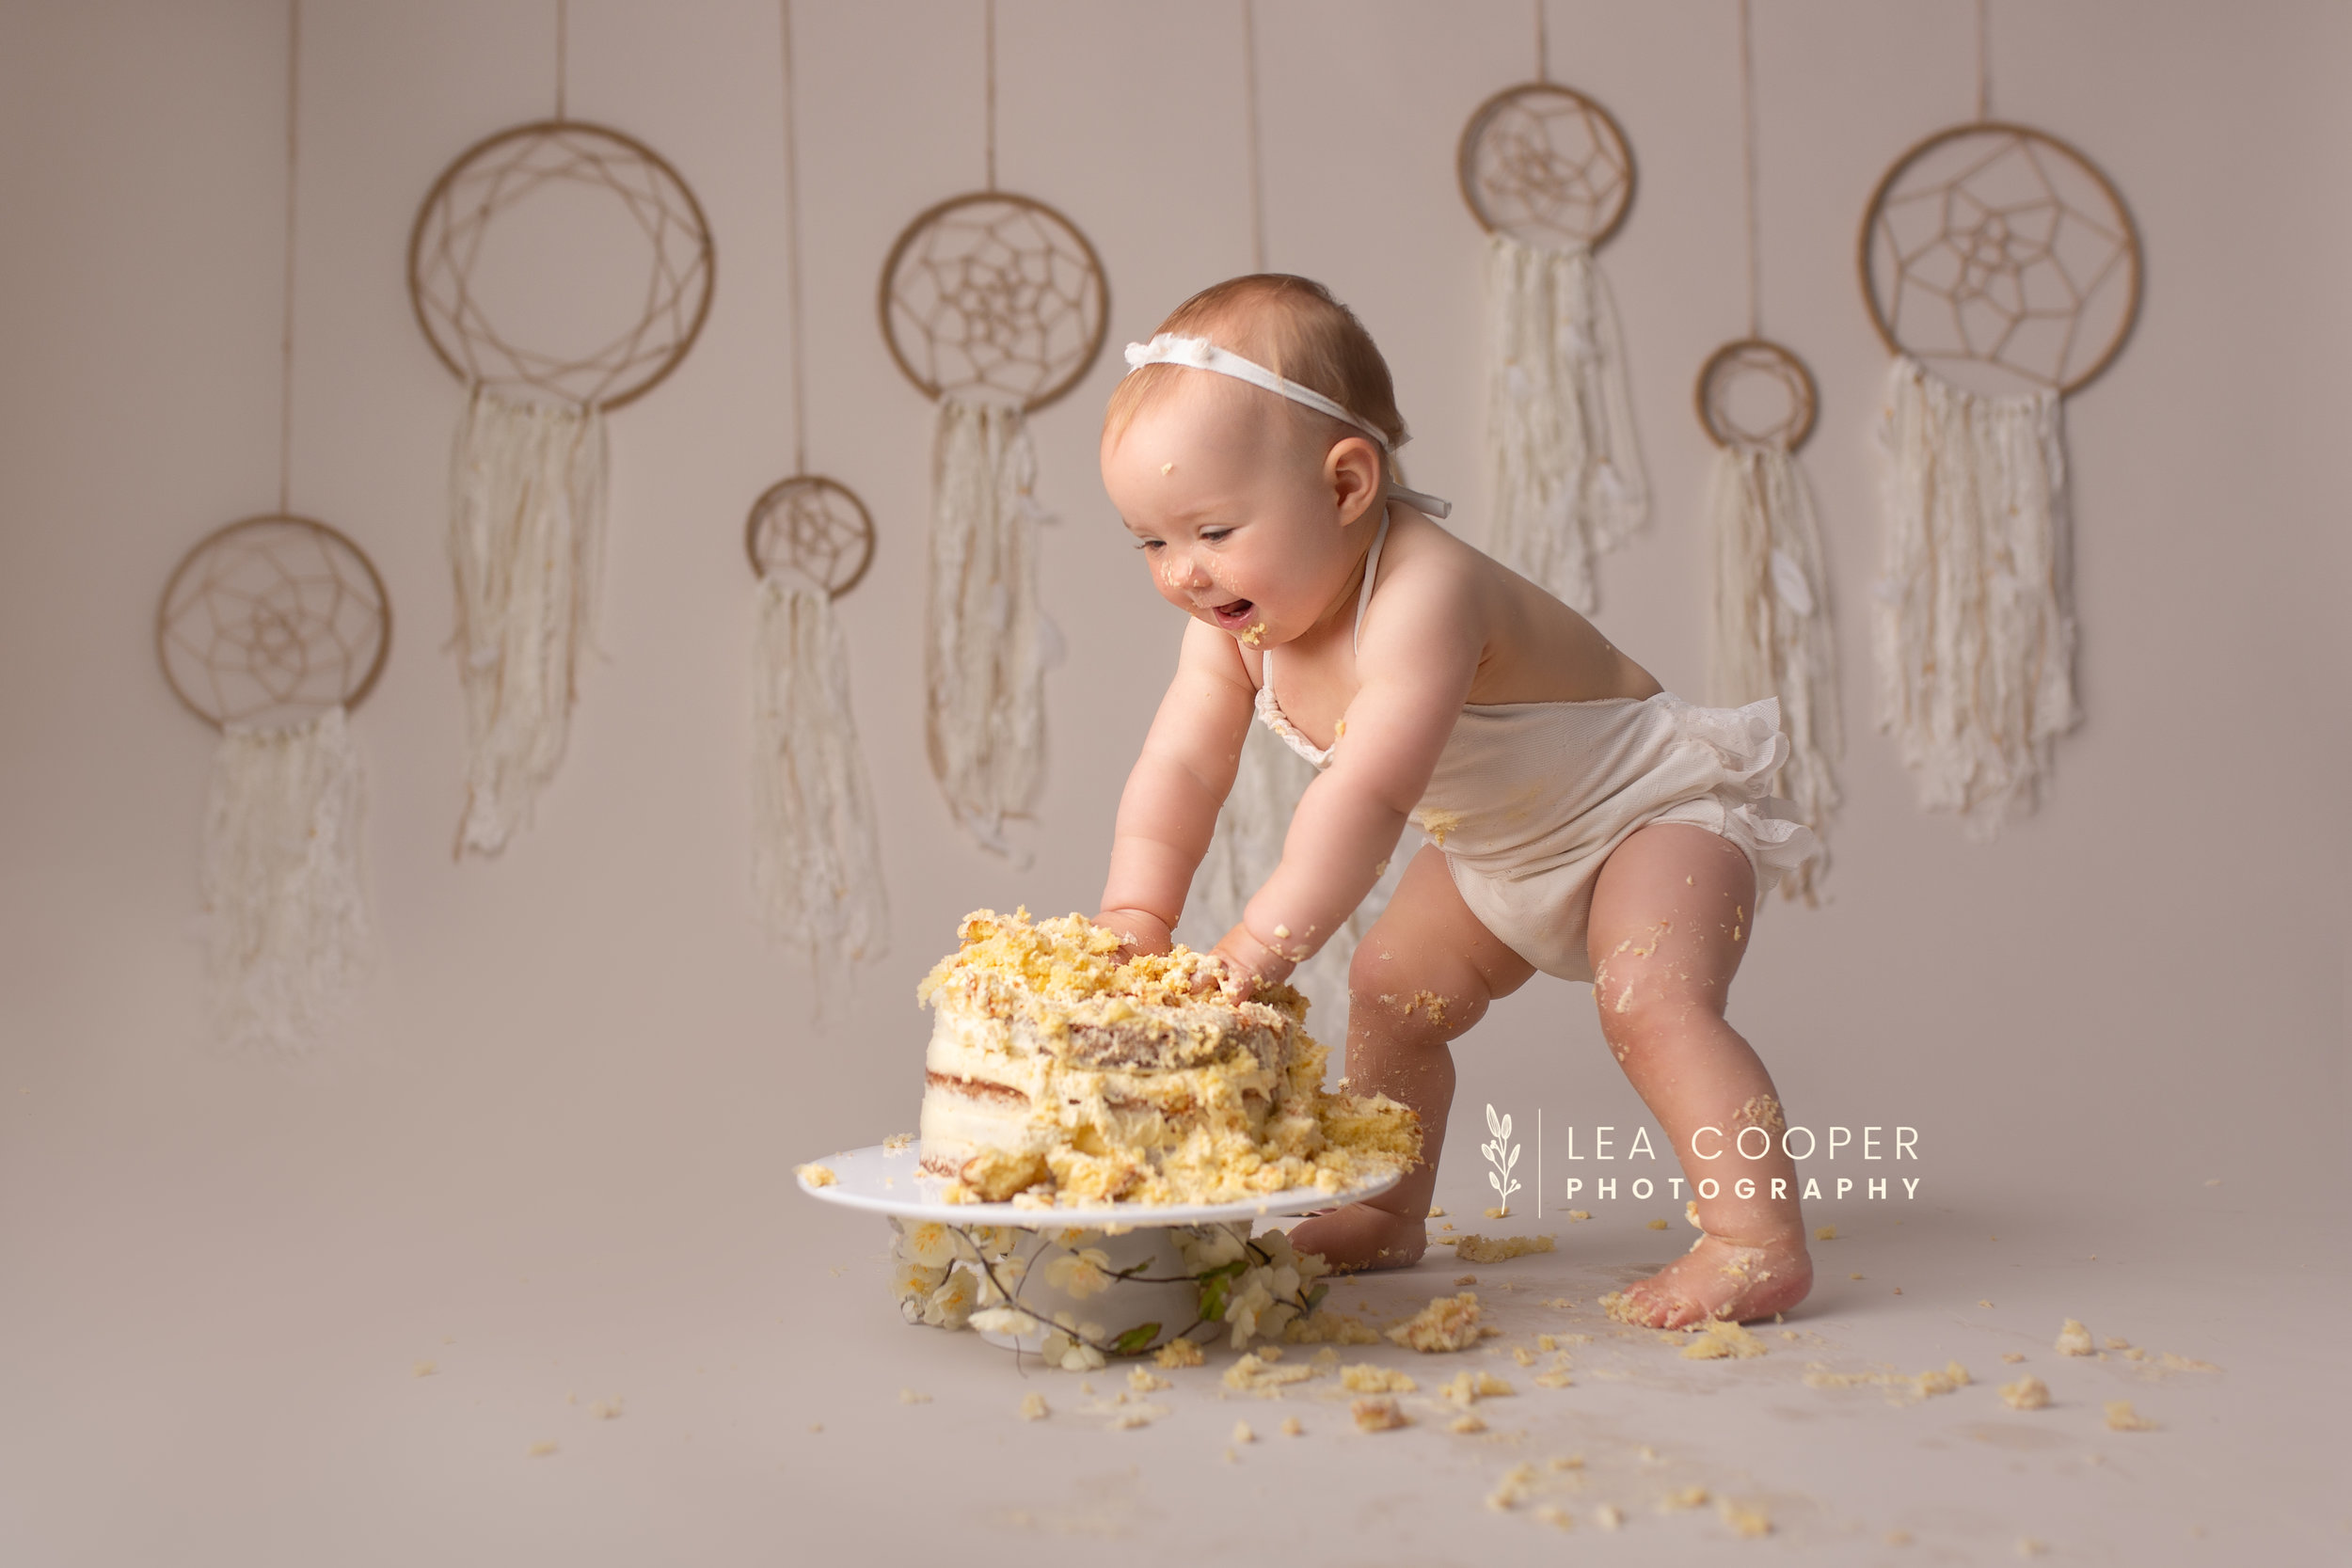 LEA-COOPER-PHOTOGRAPHY-CAKE-SMASH-SESSION-BIRTHDAY-PHOTOS-1ST-BIRTHDAY-SPLASH-SESSION-SMASH-SESSION-CHILDRENS-PHOTOGRAPHY-WILLENHALL-WOLVERHAMPTON-BIRMINGHAM-WEST-MIDLANDS-UK-9.jpg